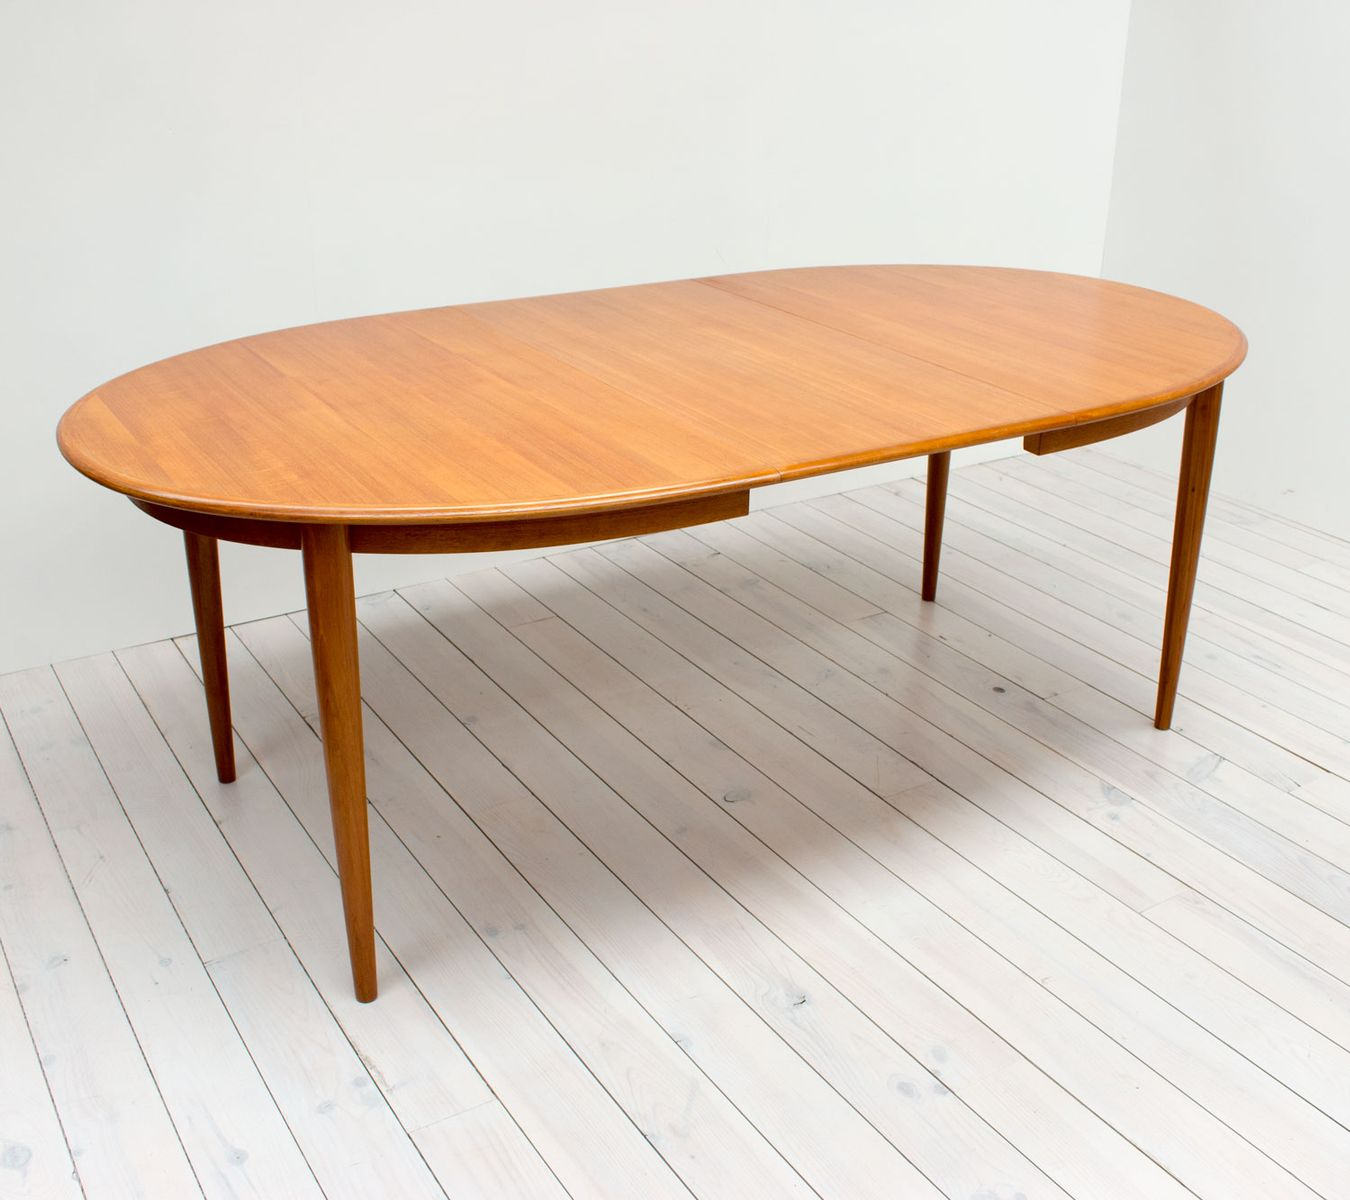 Model 4 Oval Teak Extending Dining Table by Hans Skovmand  : model 4 oval teak extending dining table by hans skovmand for skovmand andersen 1963 2 from www.pamono.com.au size 1350 x 1200 jpeg 101kB